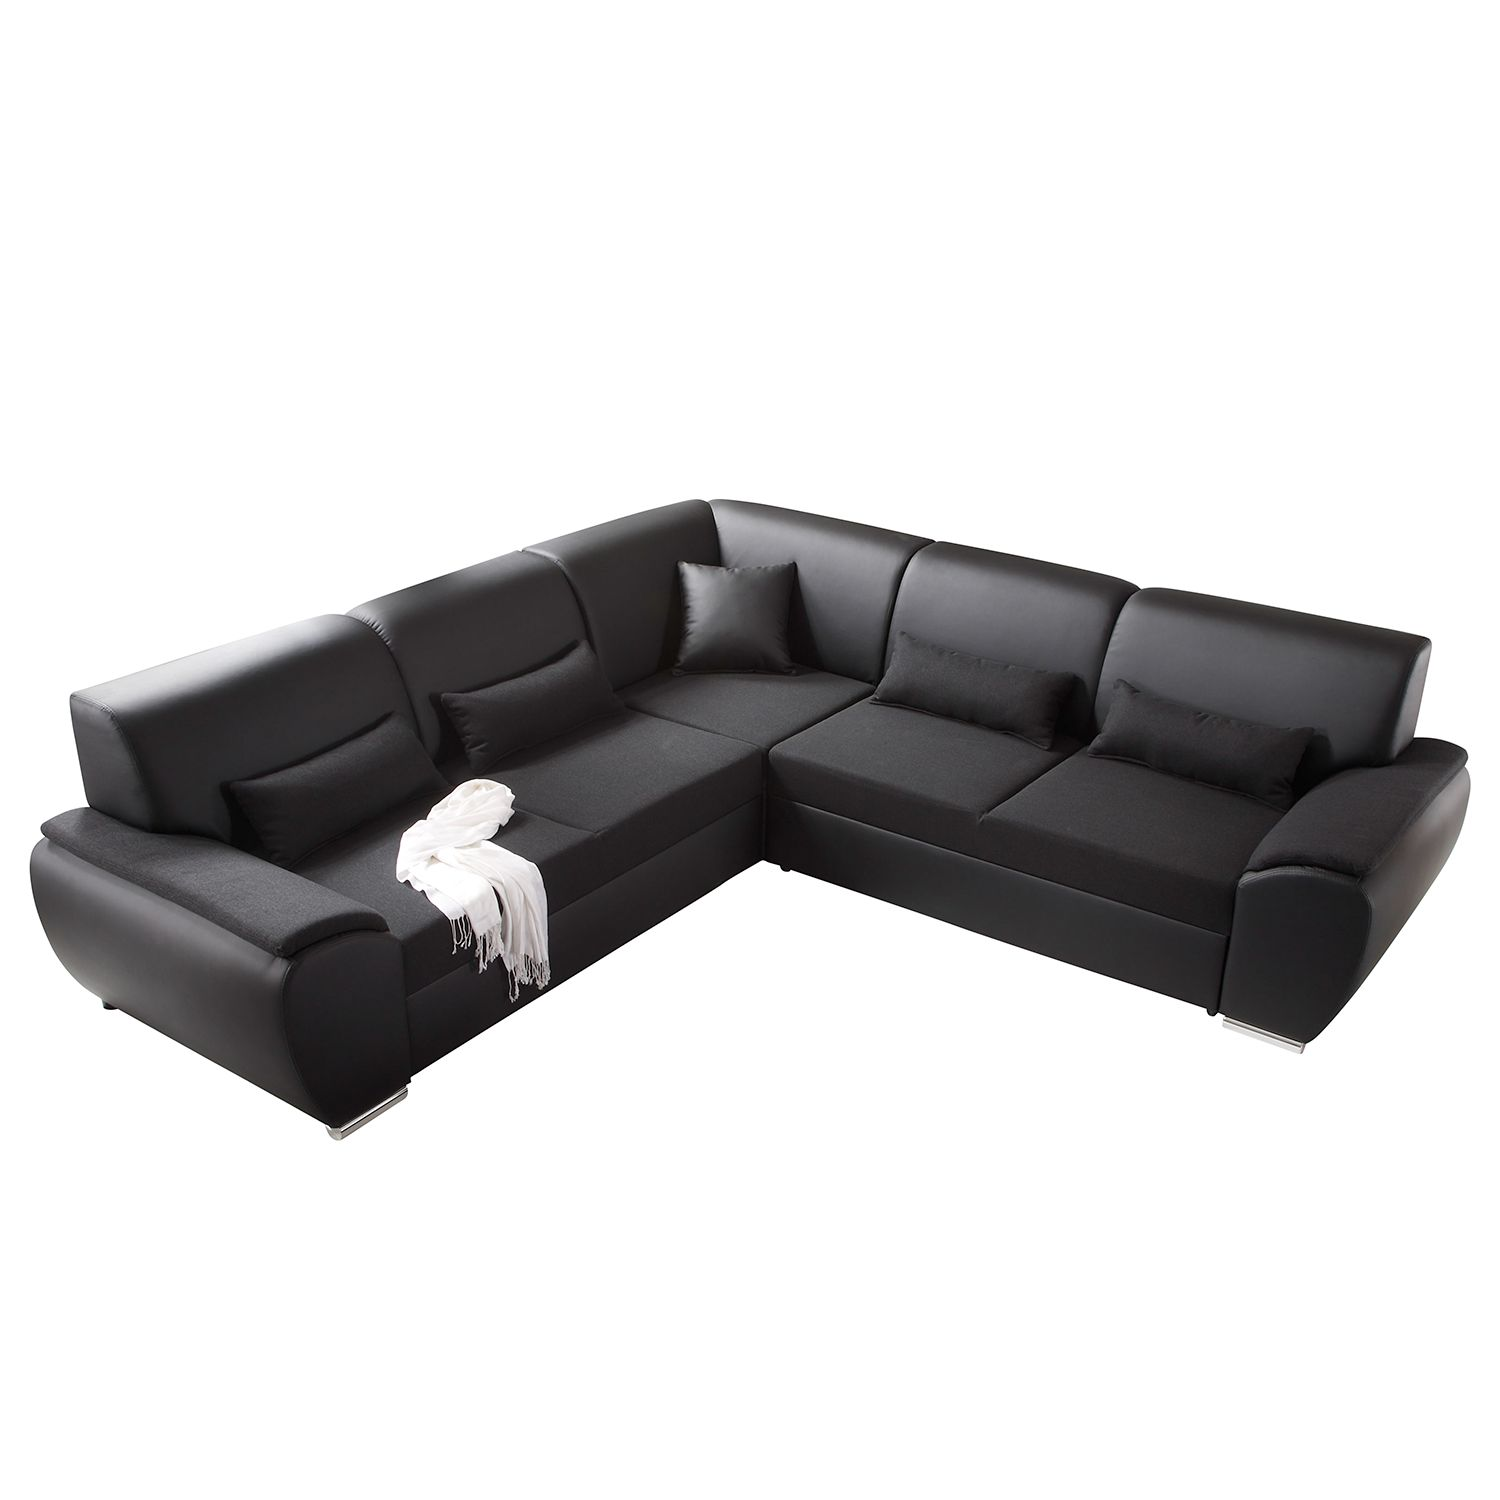 sofa mit schlaffunktion h ffner inspirierendes design f r wohnm bel. Black Bedroom Furniture Sets. Home Design Ideas